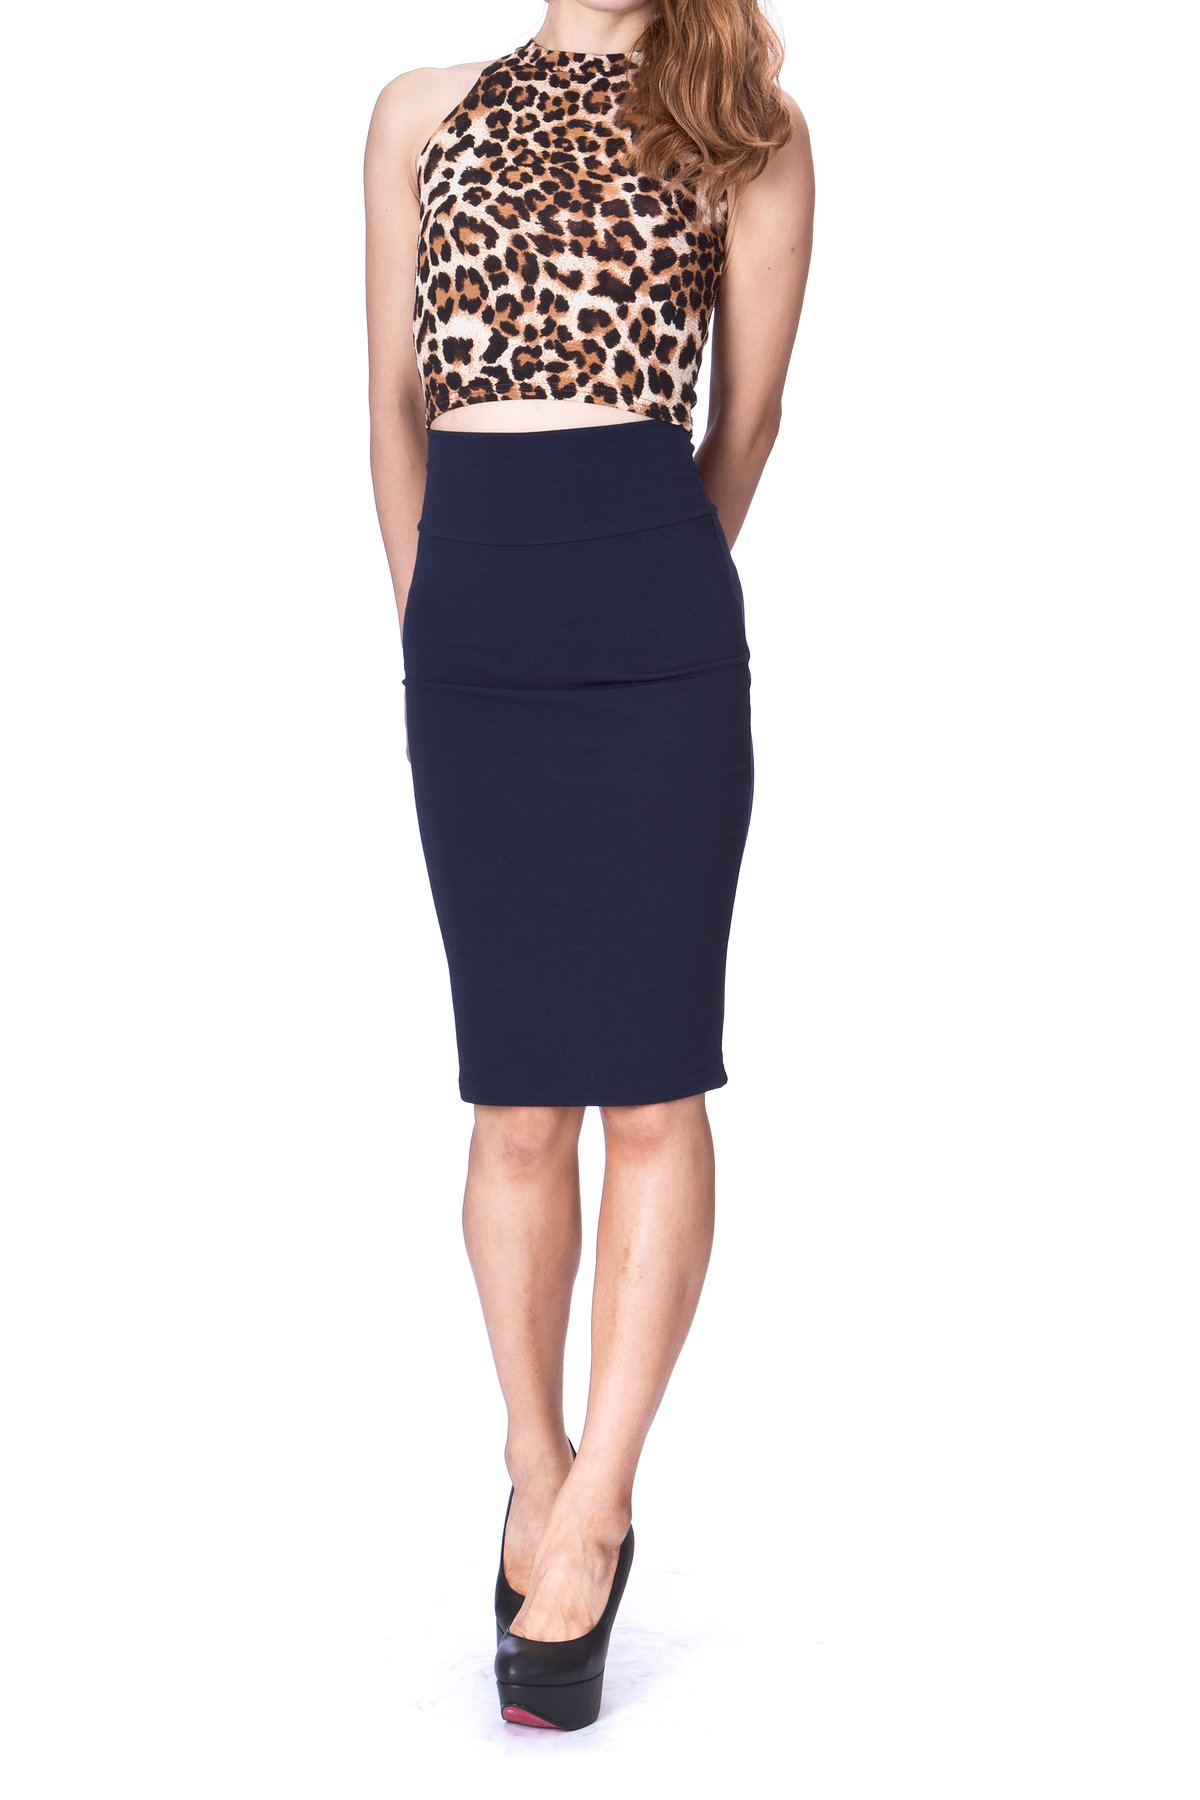 Every Occasion Stretch Pull on Wide High Waist Bodycon Pencil Knee Length Midi Skirt Navy 1 1